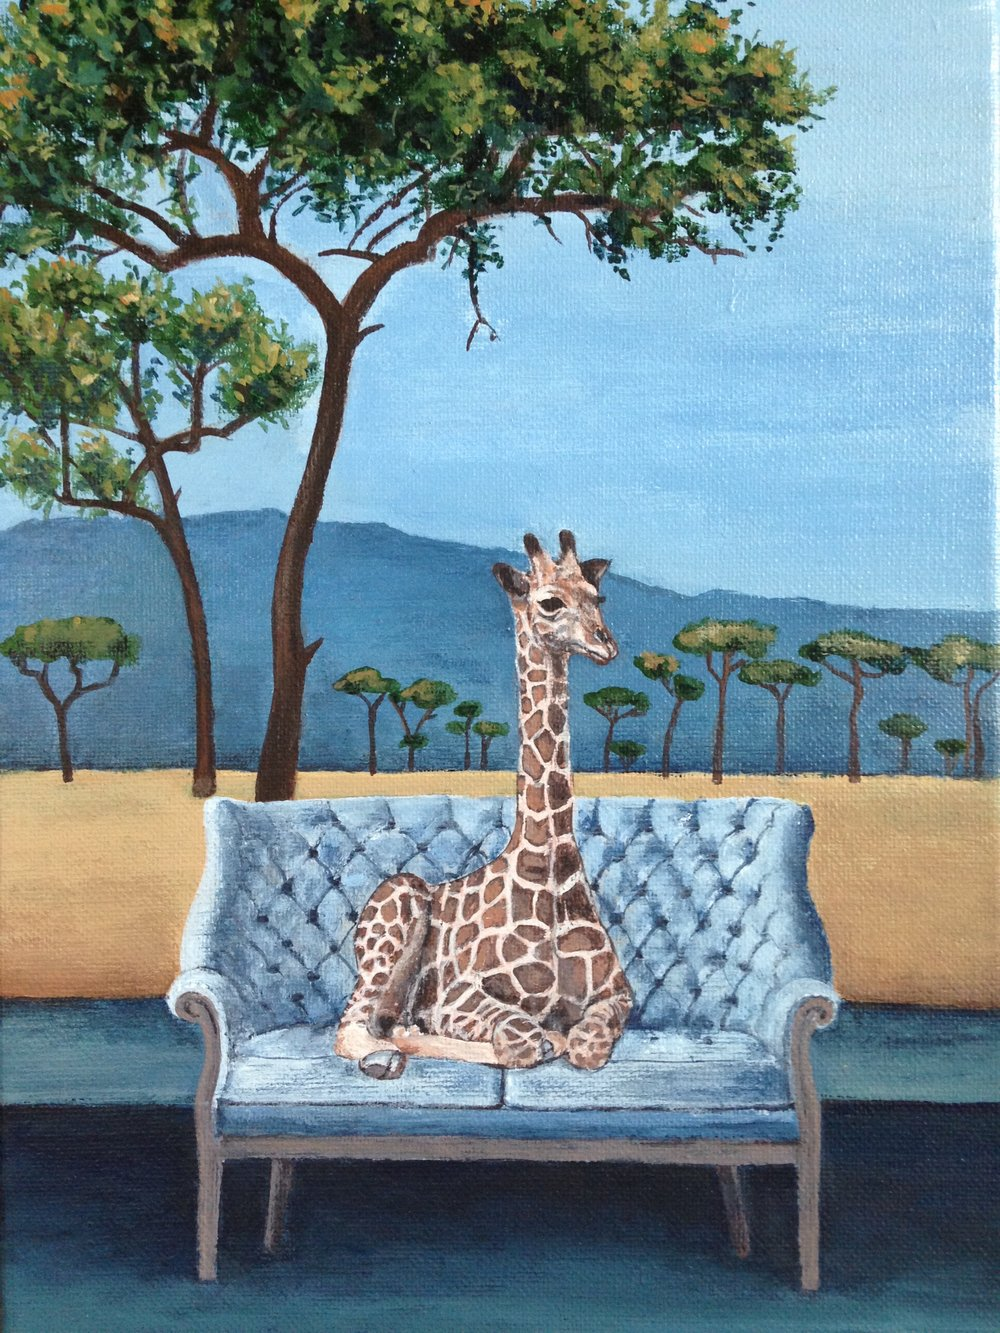 wise giraffe, 9''x12'', acrylic on canvas, 2016